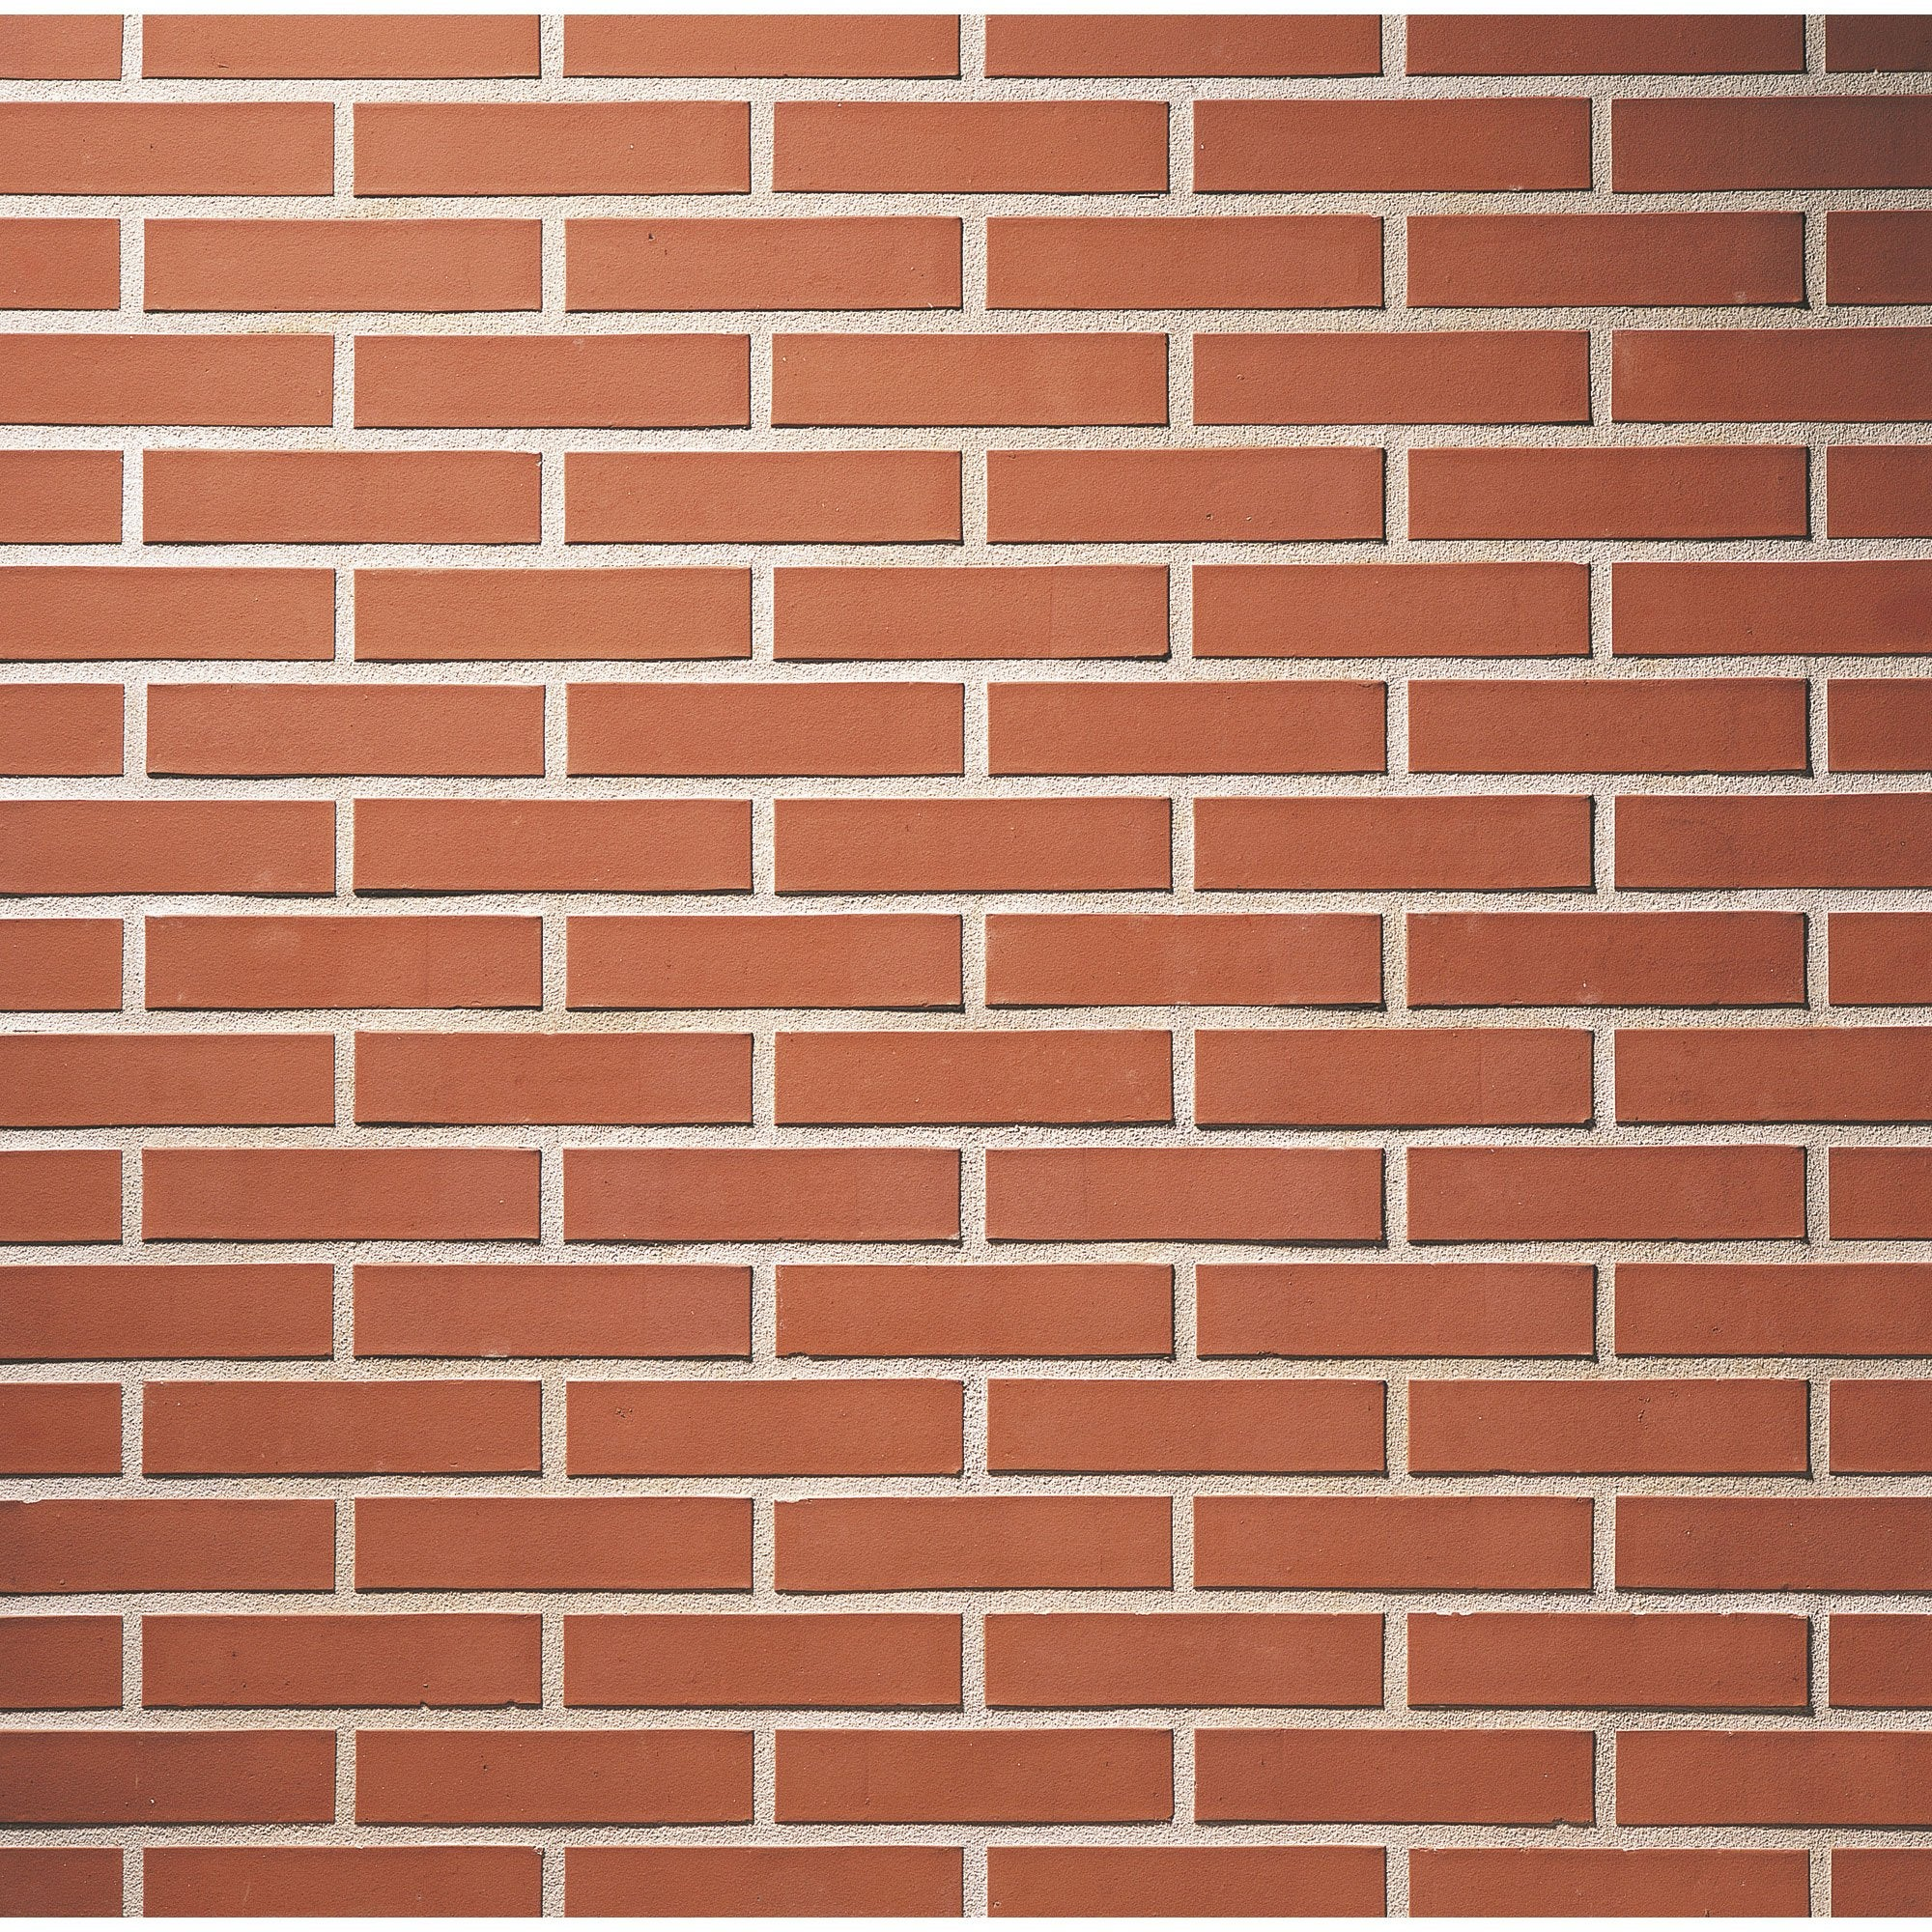 Carrelage Terre Cuite Rouge lot de 28 angles terre rouge terre cuite, terca, ep.15 mm